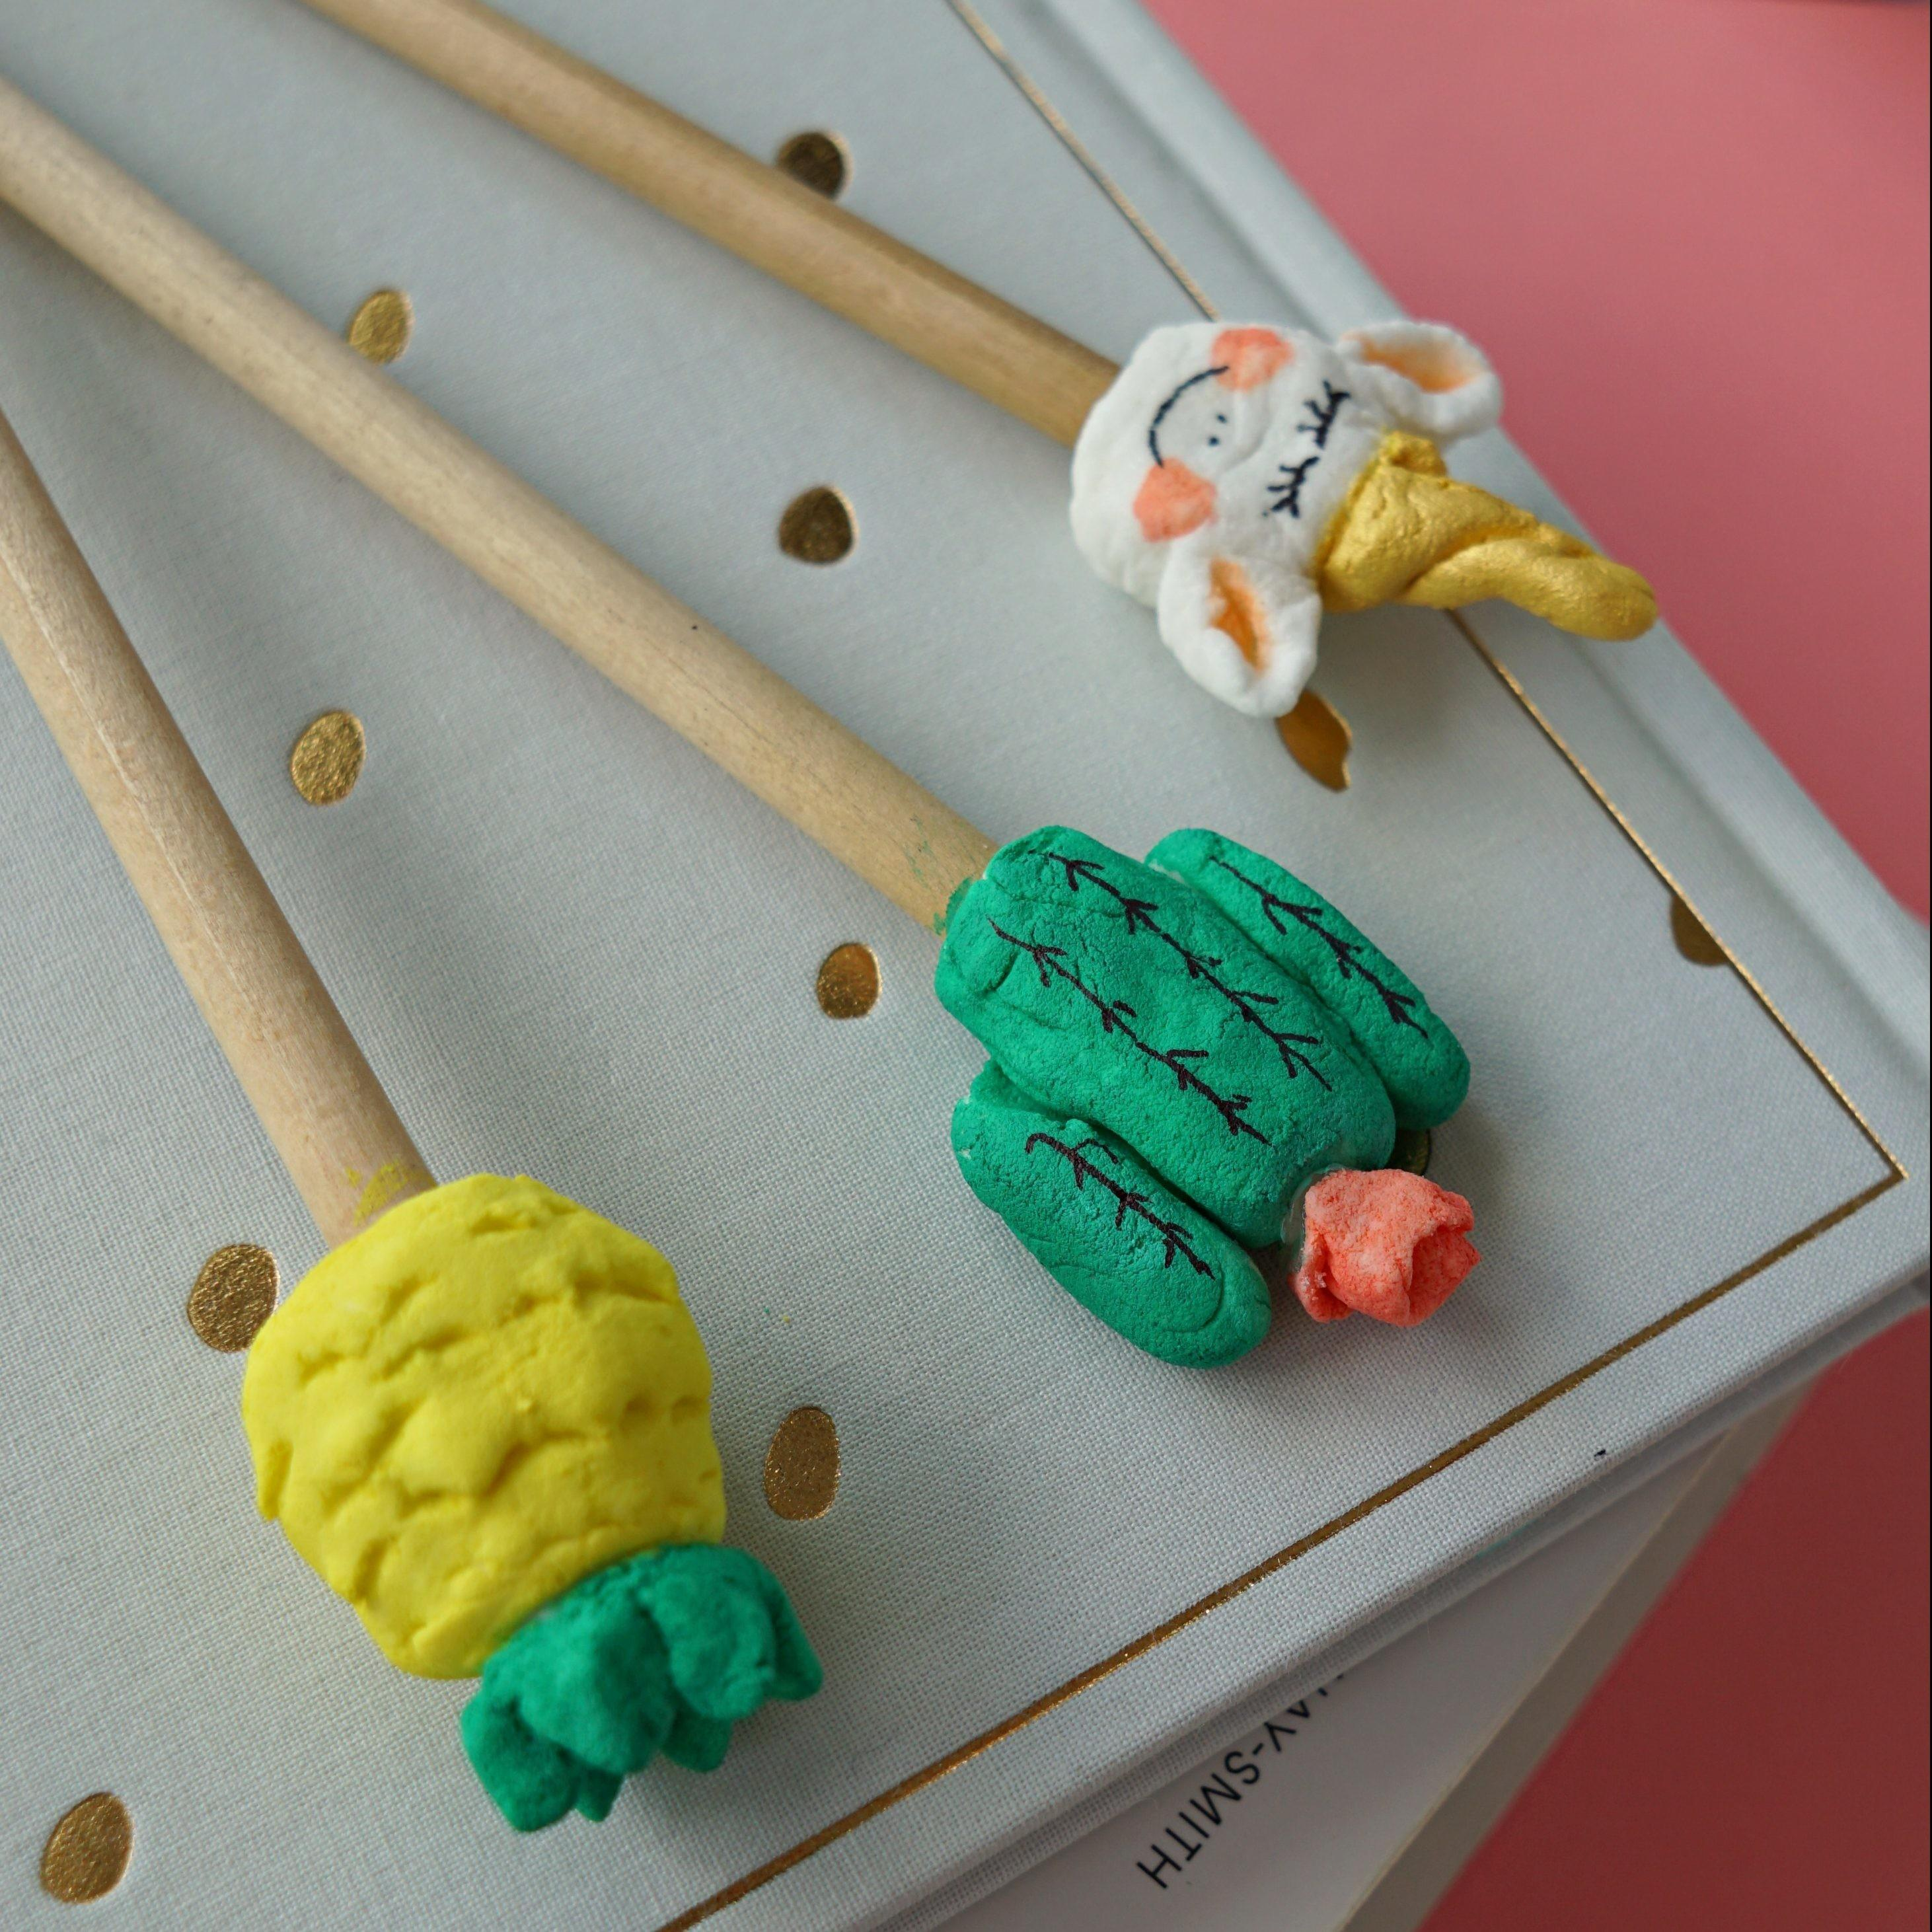 Homemade Clay Recipe Diy Pencil Toppers Makeup Dummy